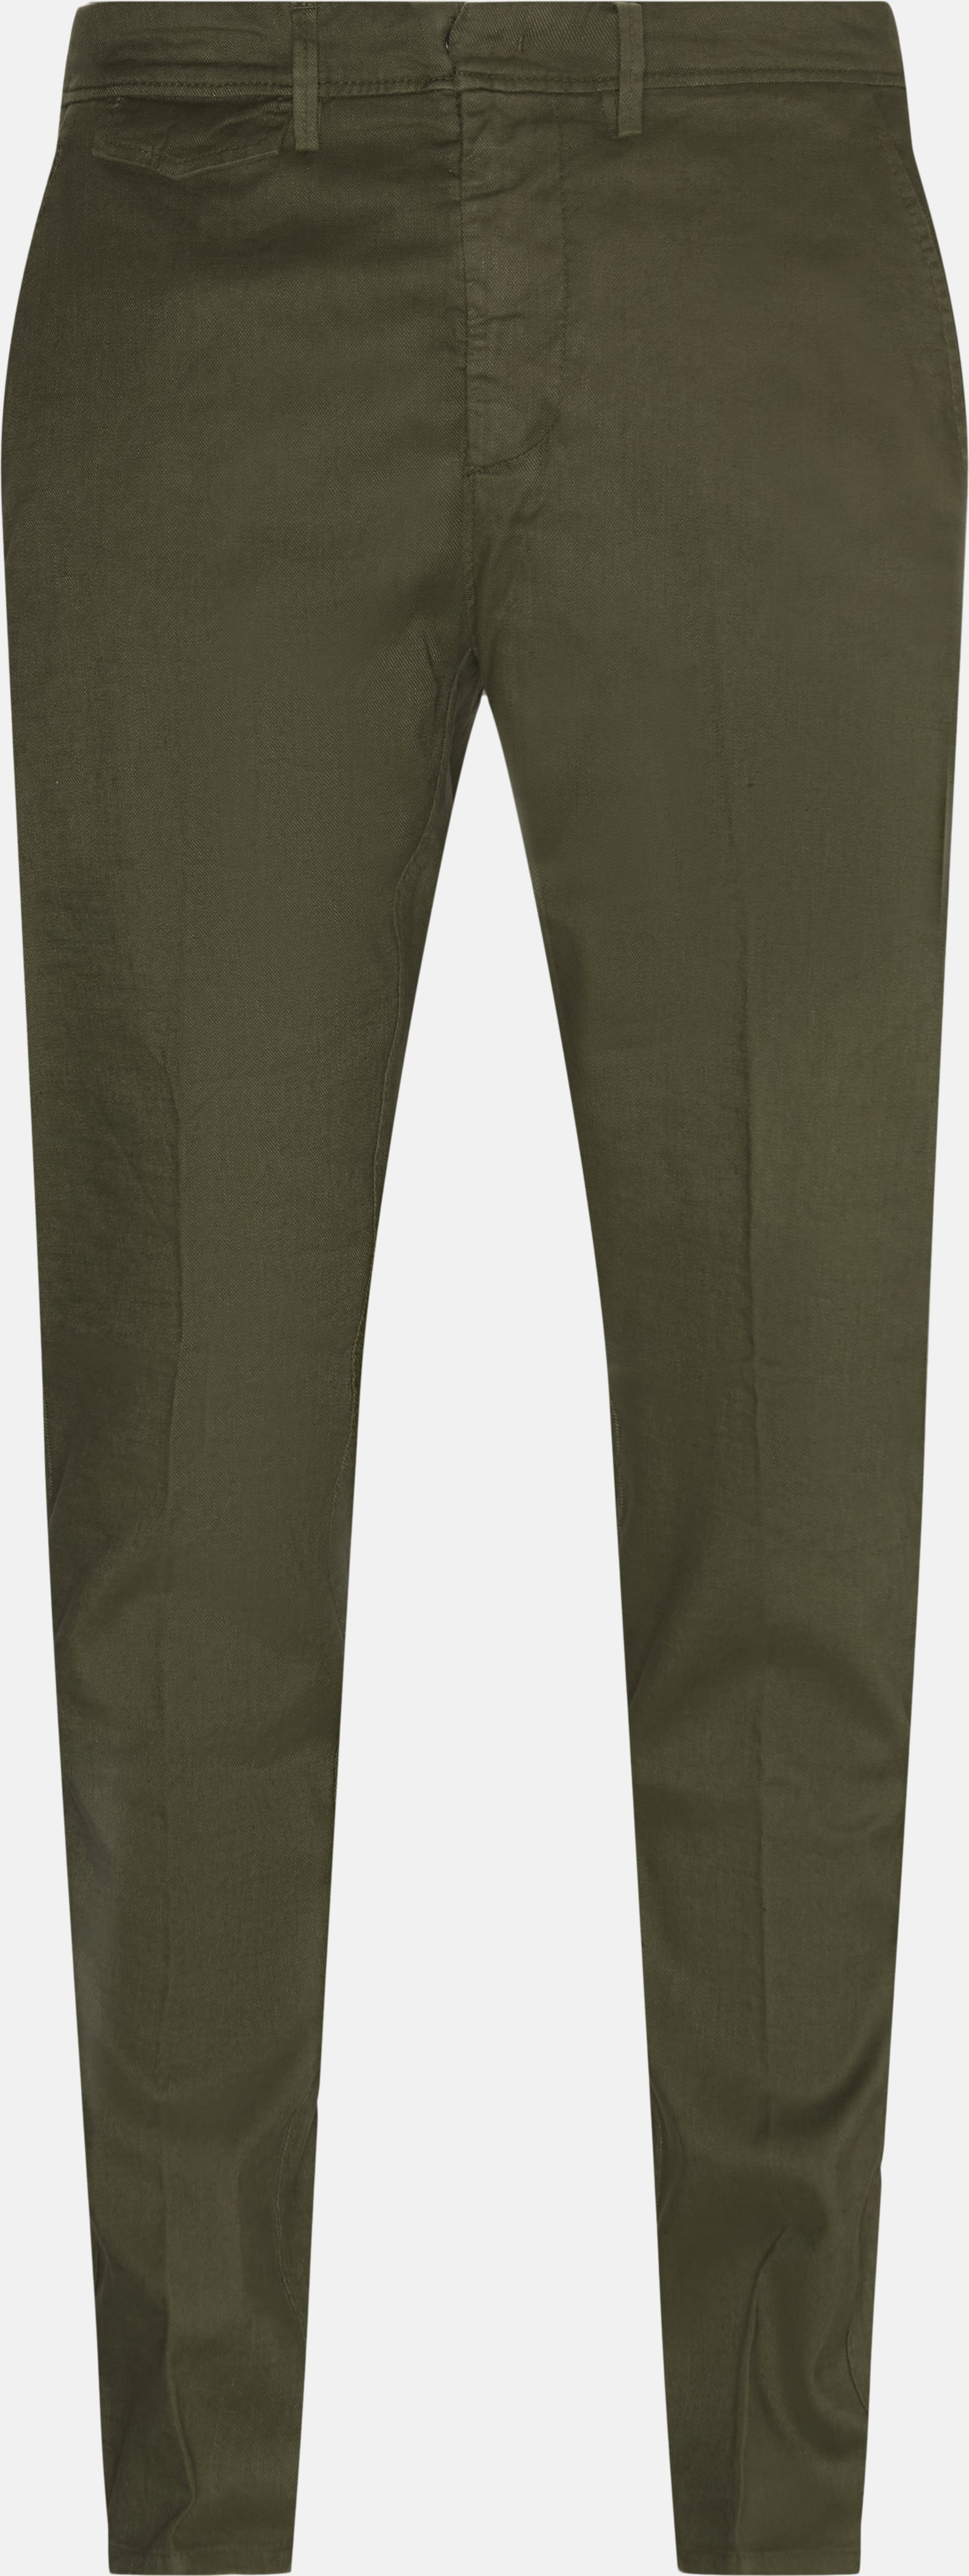 Trousers - Regular - Army